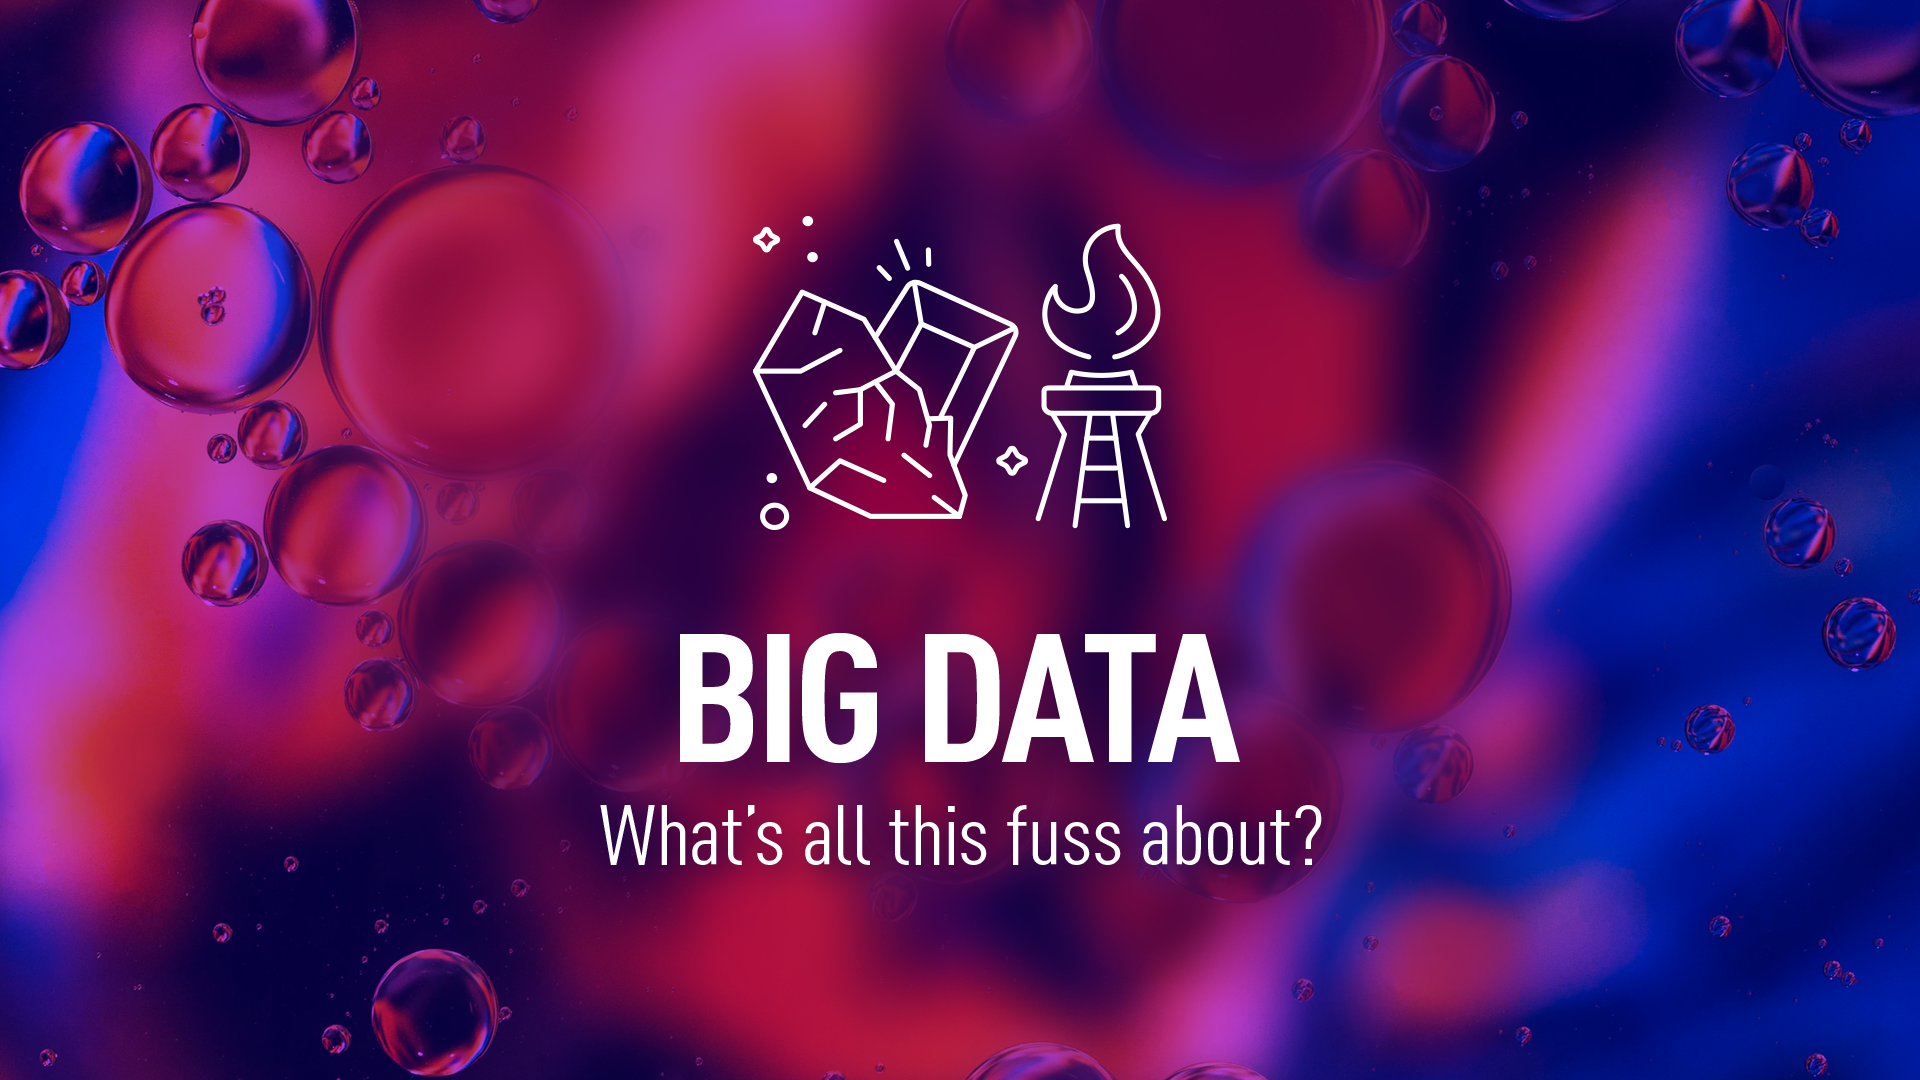 Big data – what's all this fuss about?